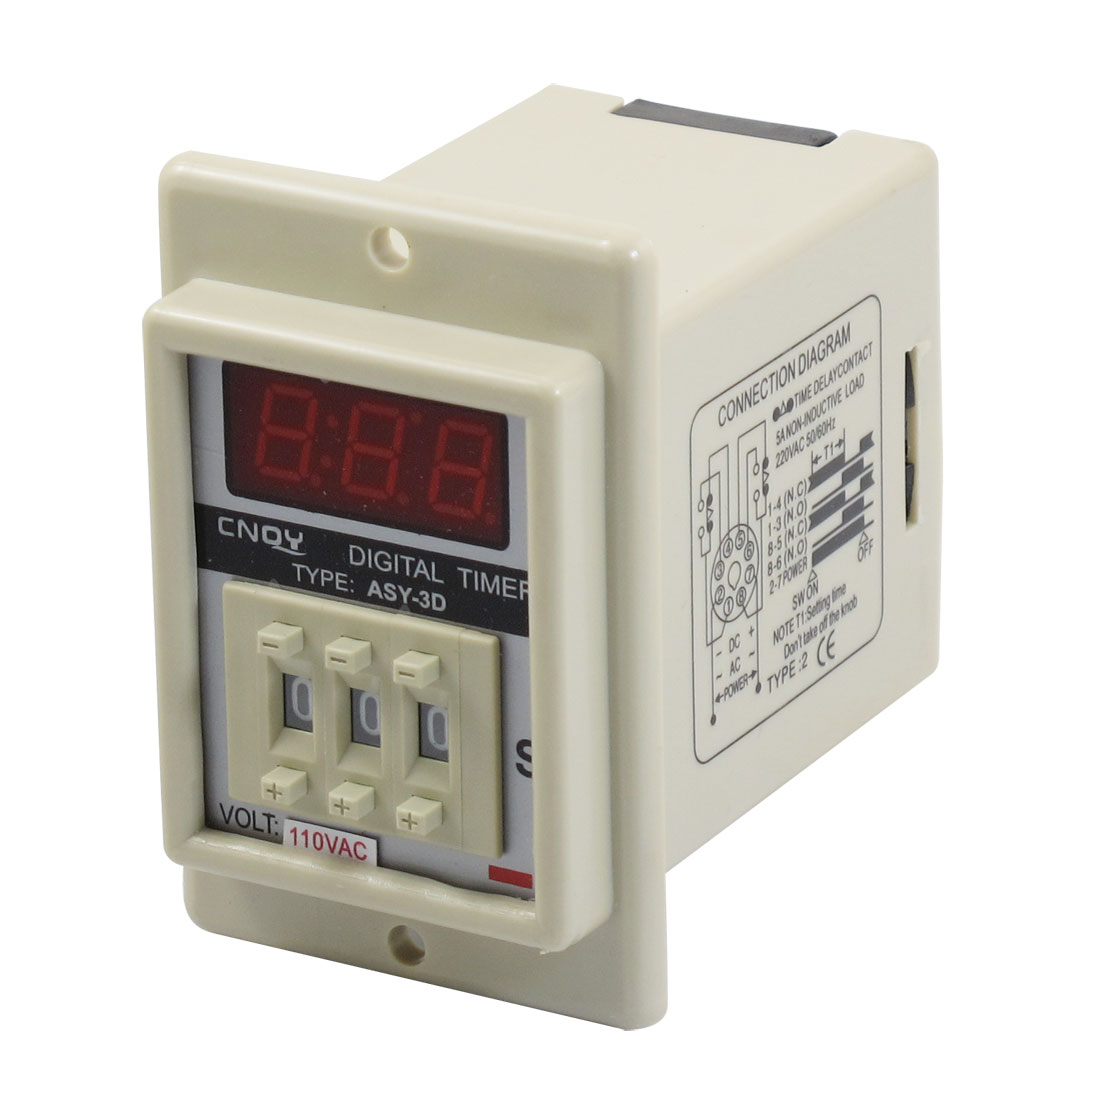 AC 110V 8 Pin 0.01-9.99 Second Digital Timer Time Delay Relay Beige ASY-3D